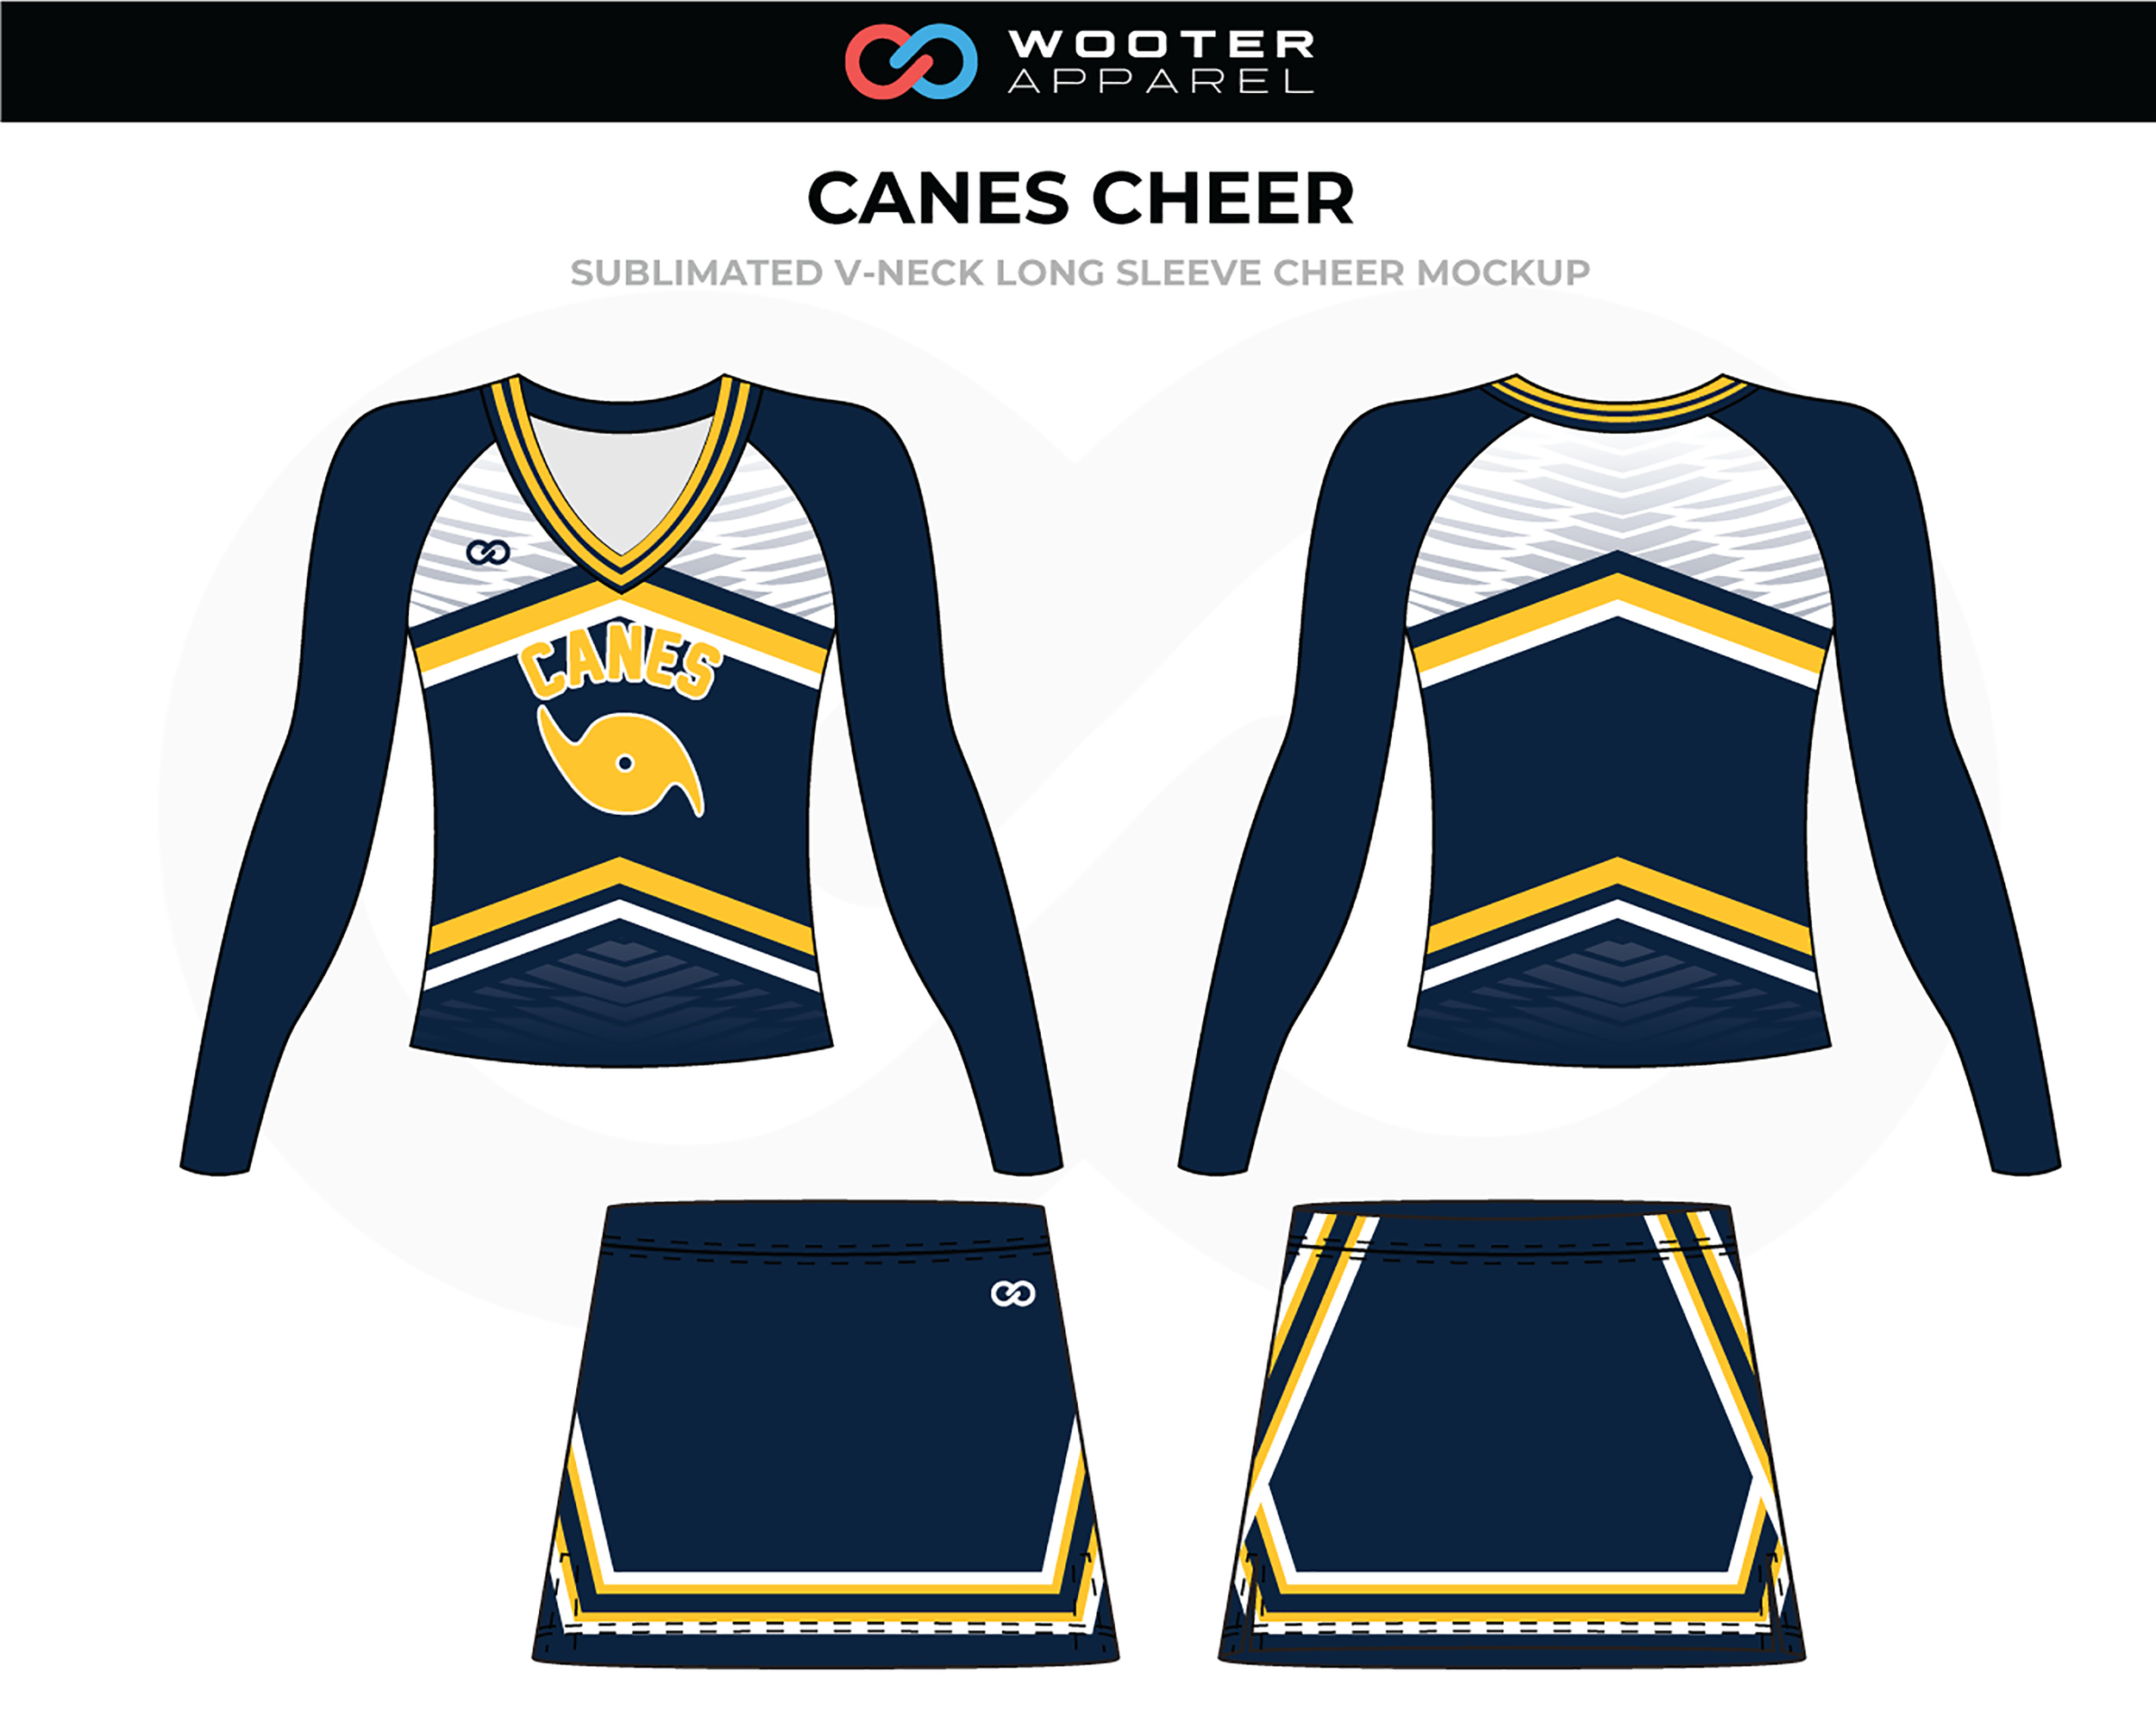 CANES Blue White Yellow Cheer Uniform, V-Neck Long Sleeve, and Skirt